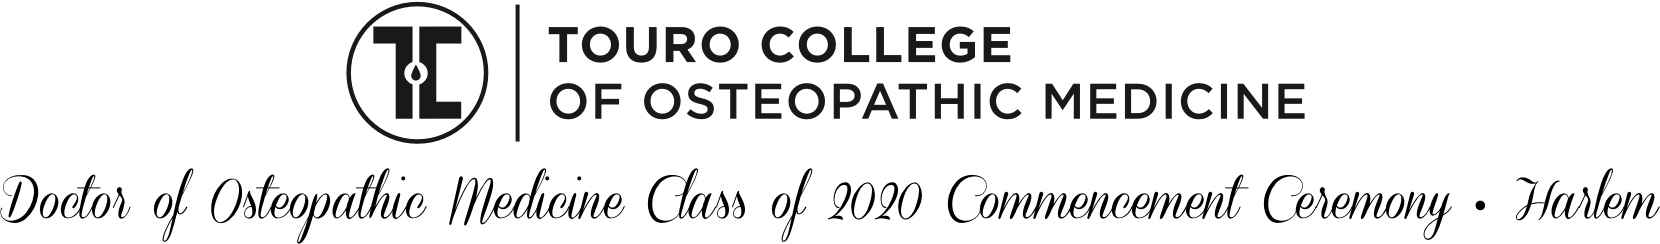 Touro College of Osteopathic Medicine